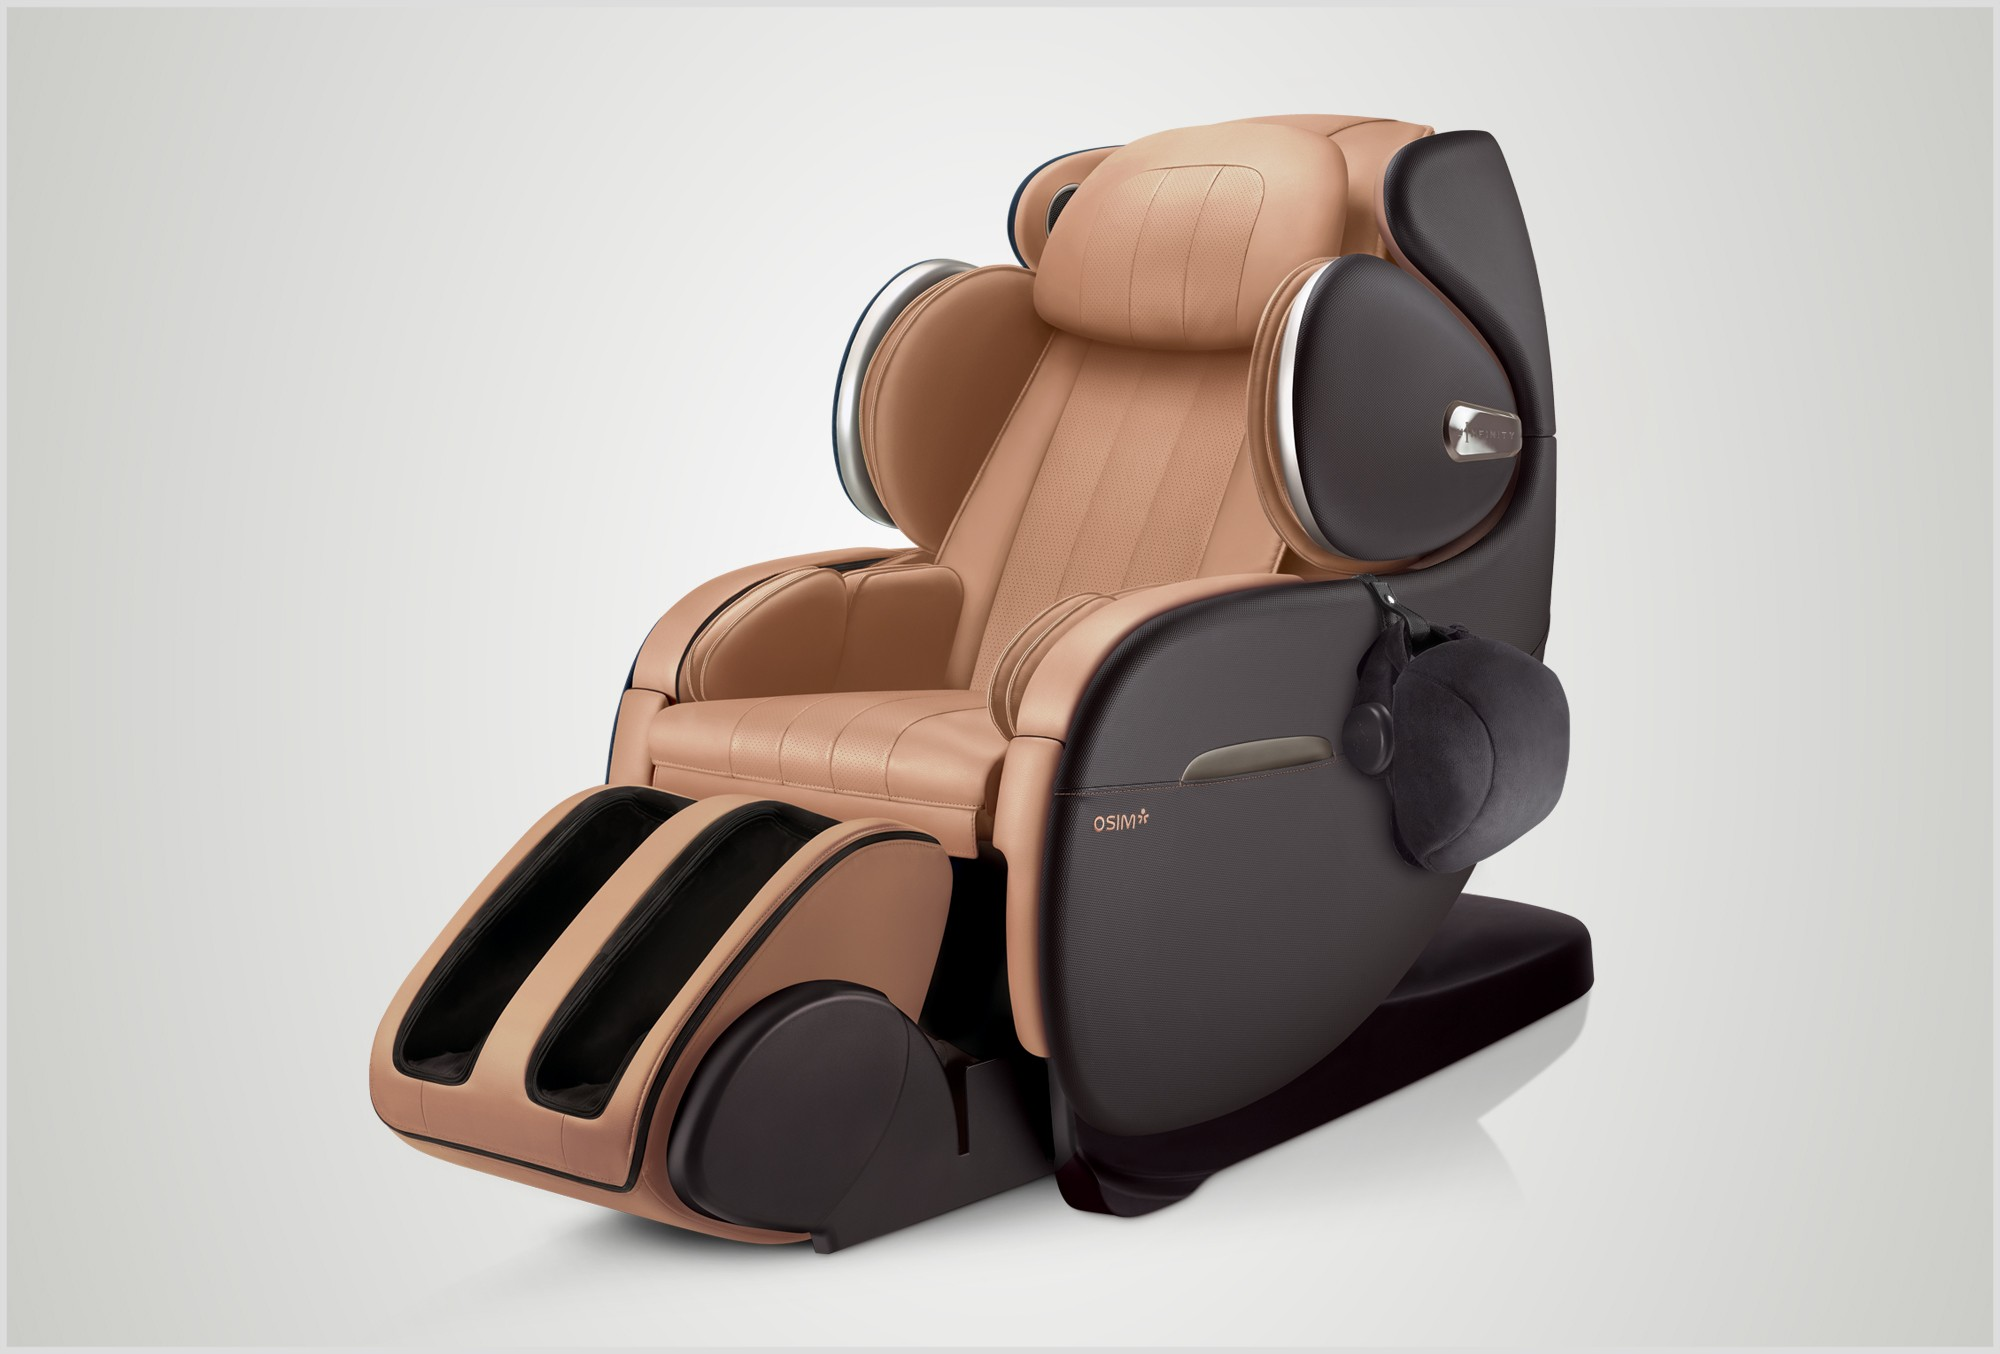 Awesome Osim Massage Chair Inspirational